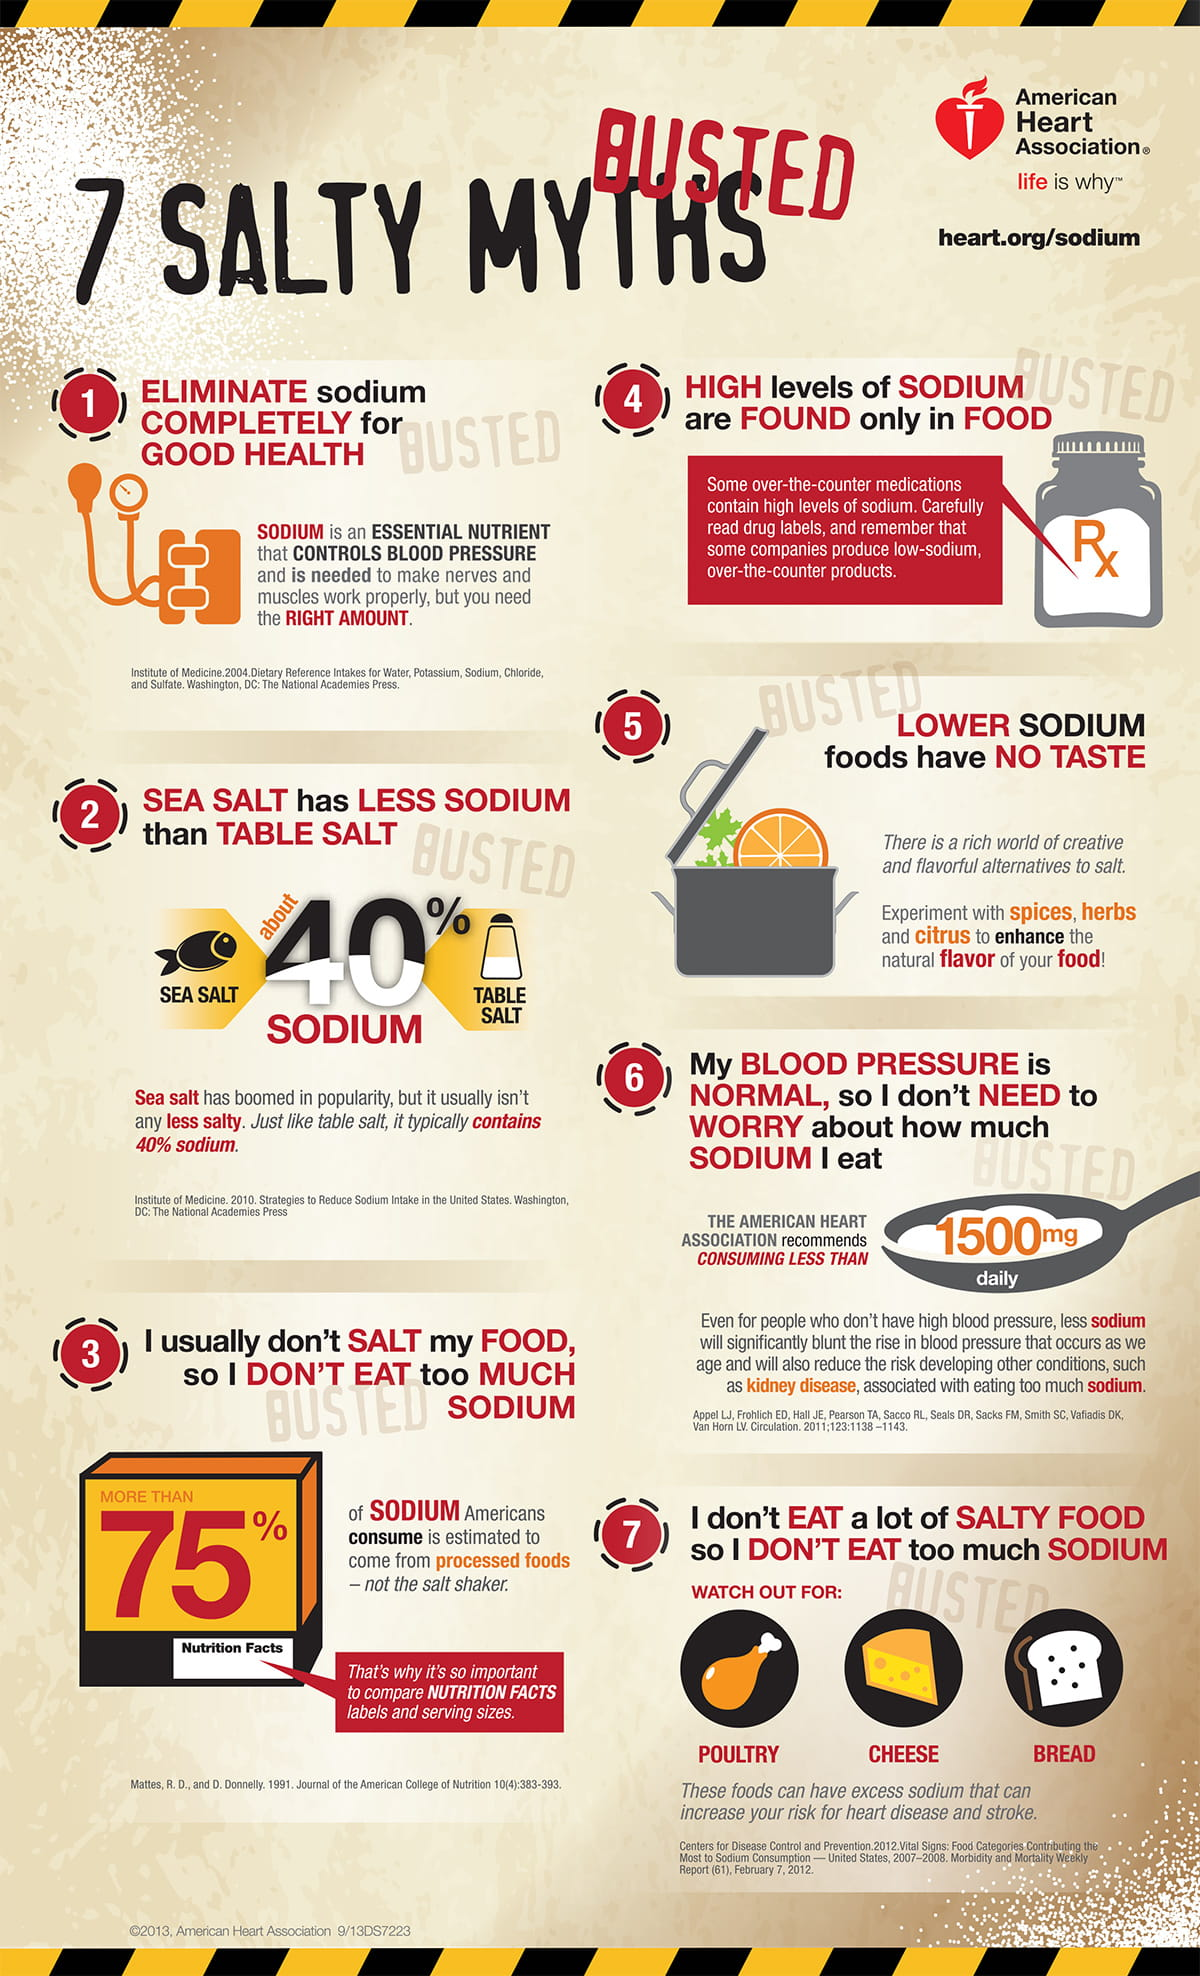 7 Salty Sodium Myths Busted Infographic